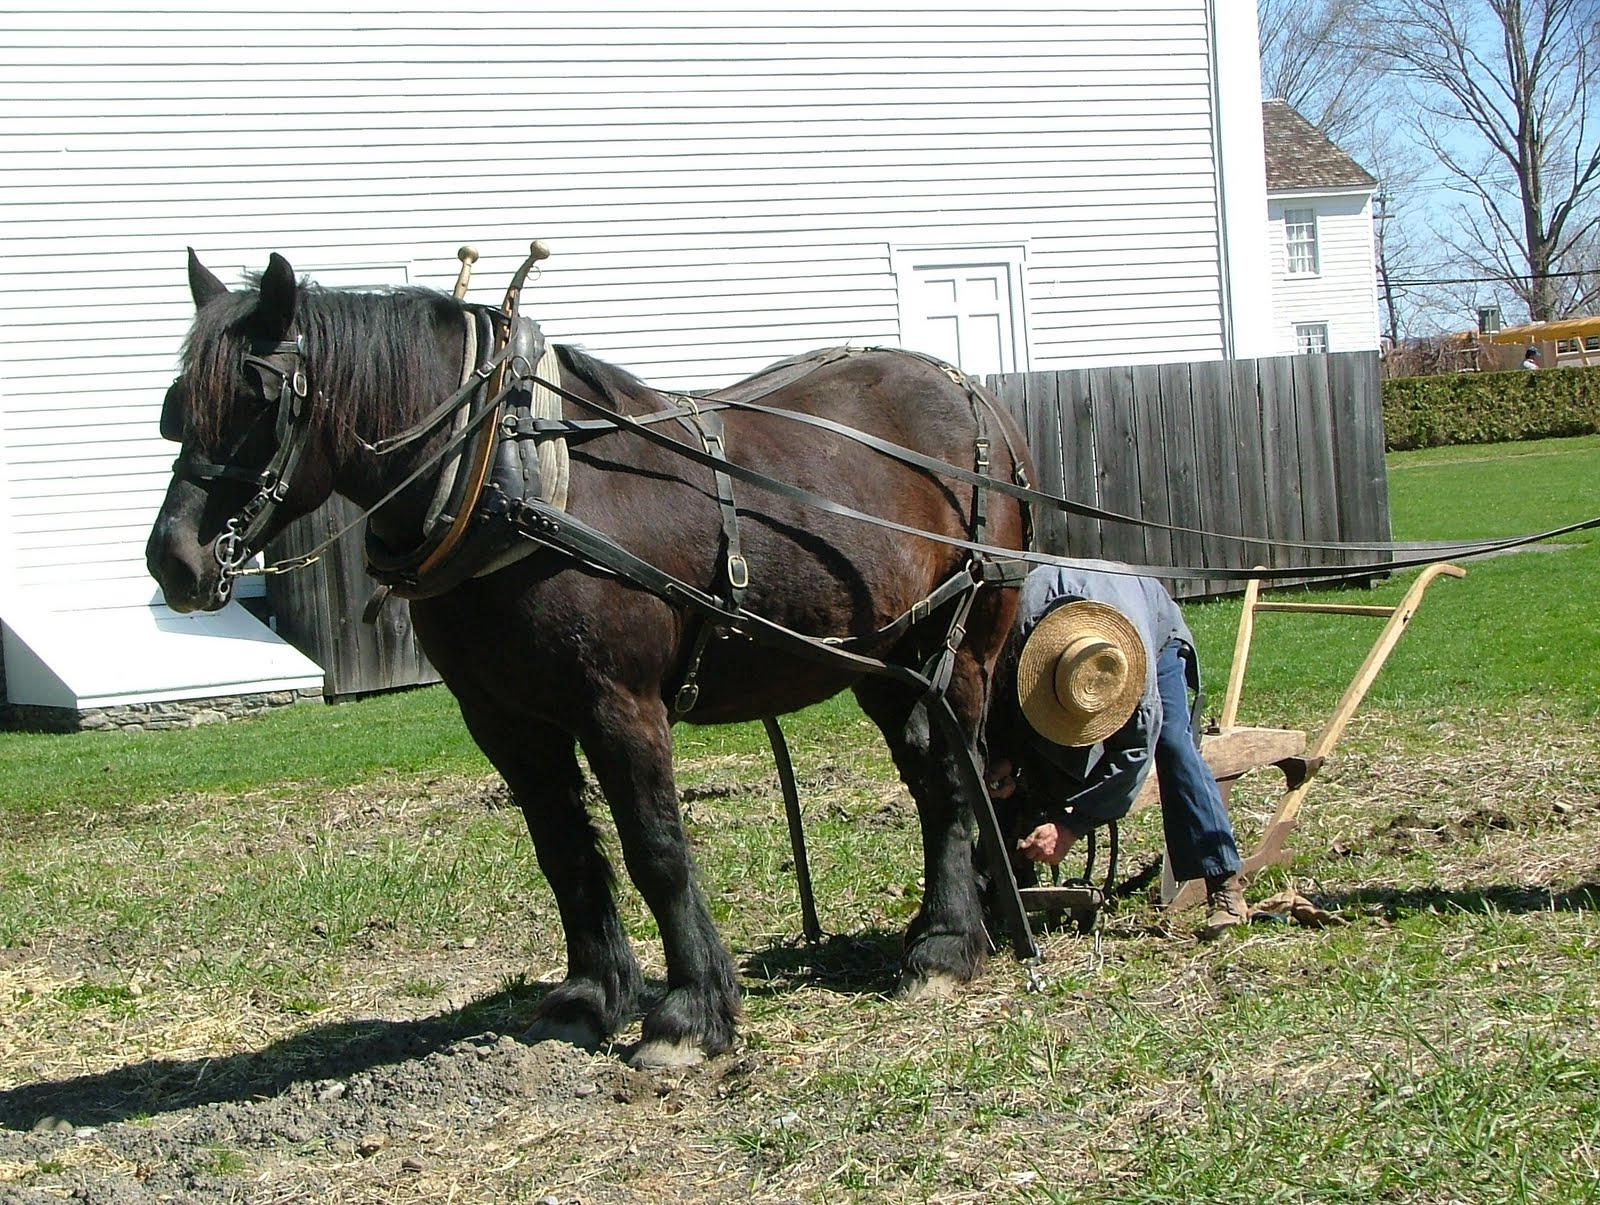 Horse Drawn Turning Plow http://ruralblacksmith.blogspot.com/2010/04/fresh-tilled-soil-using-1830s-horse.html